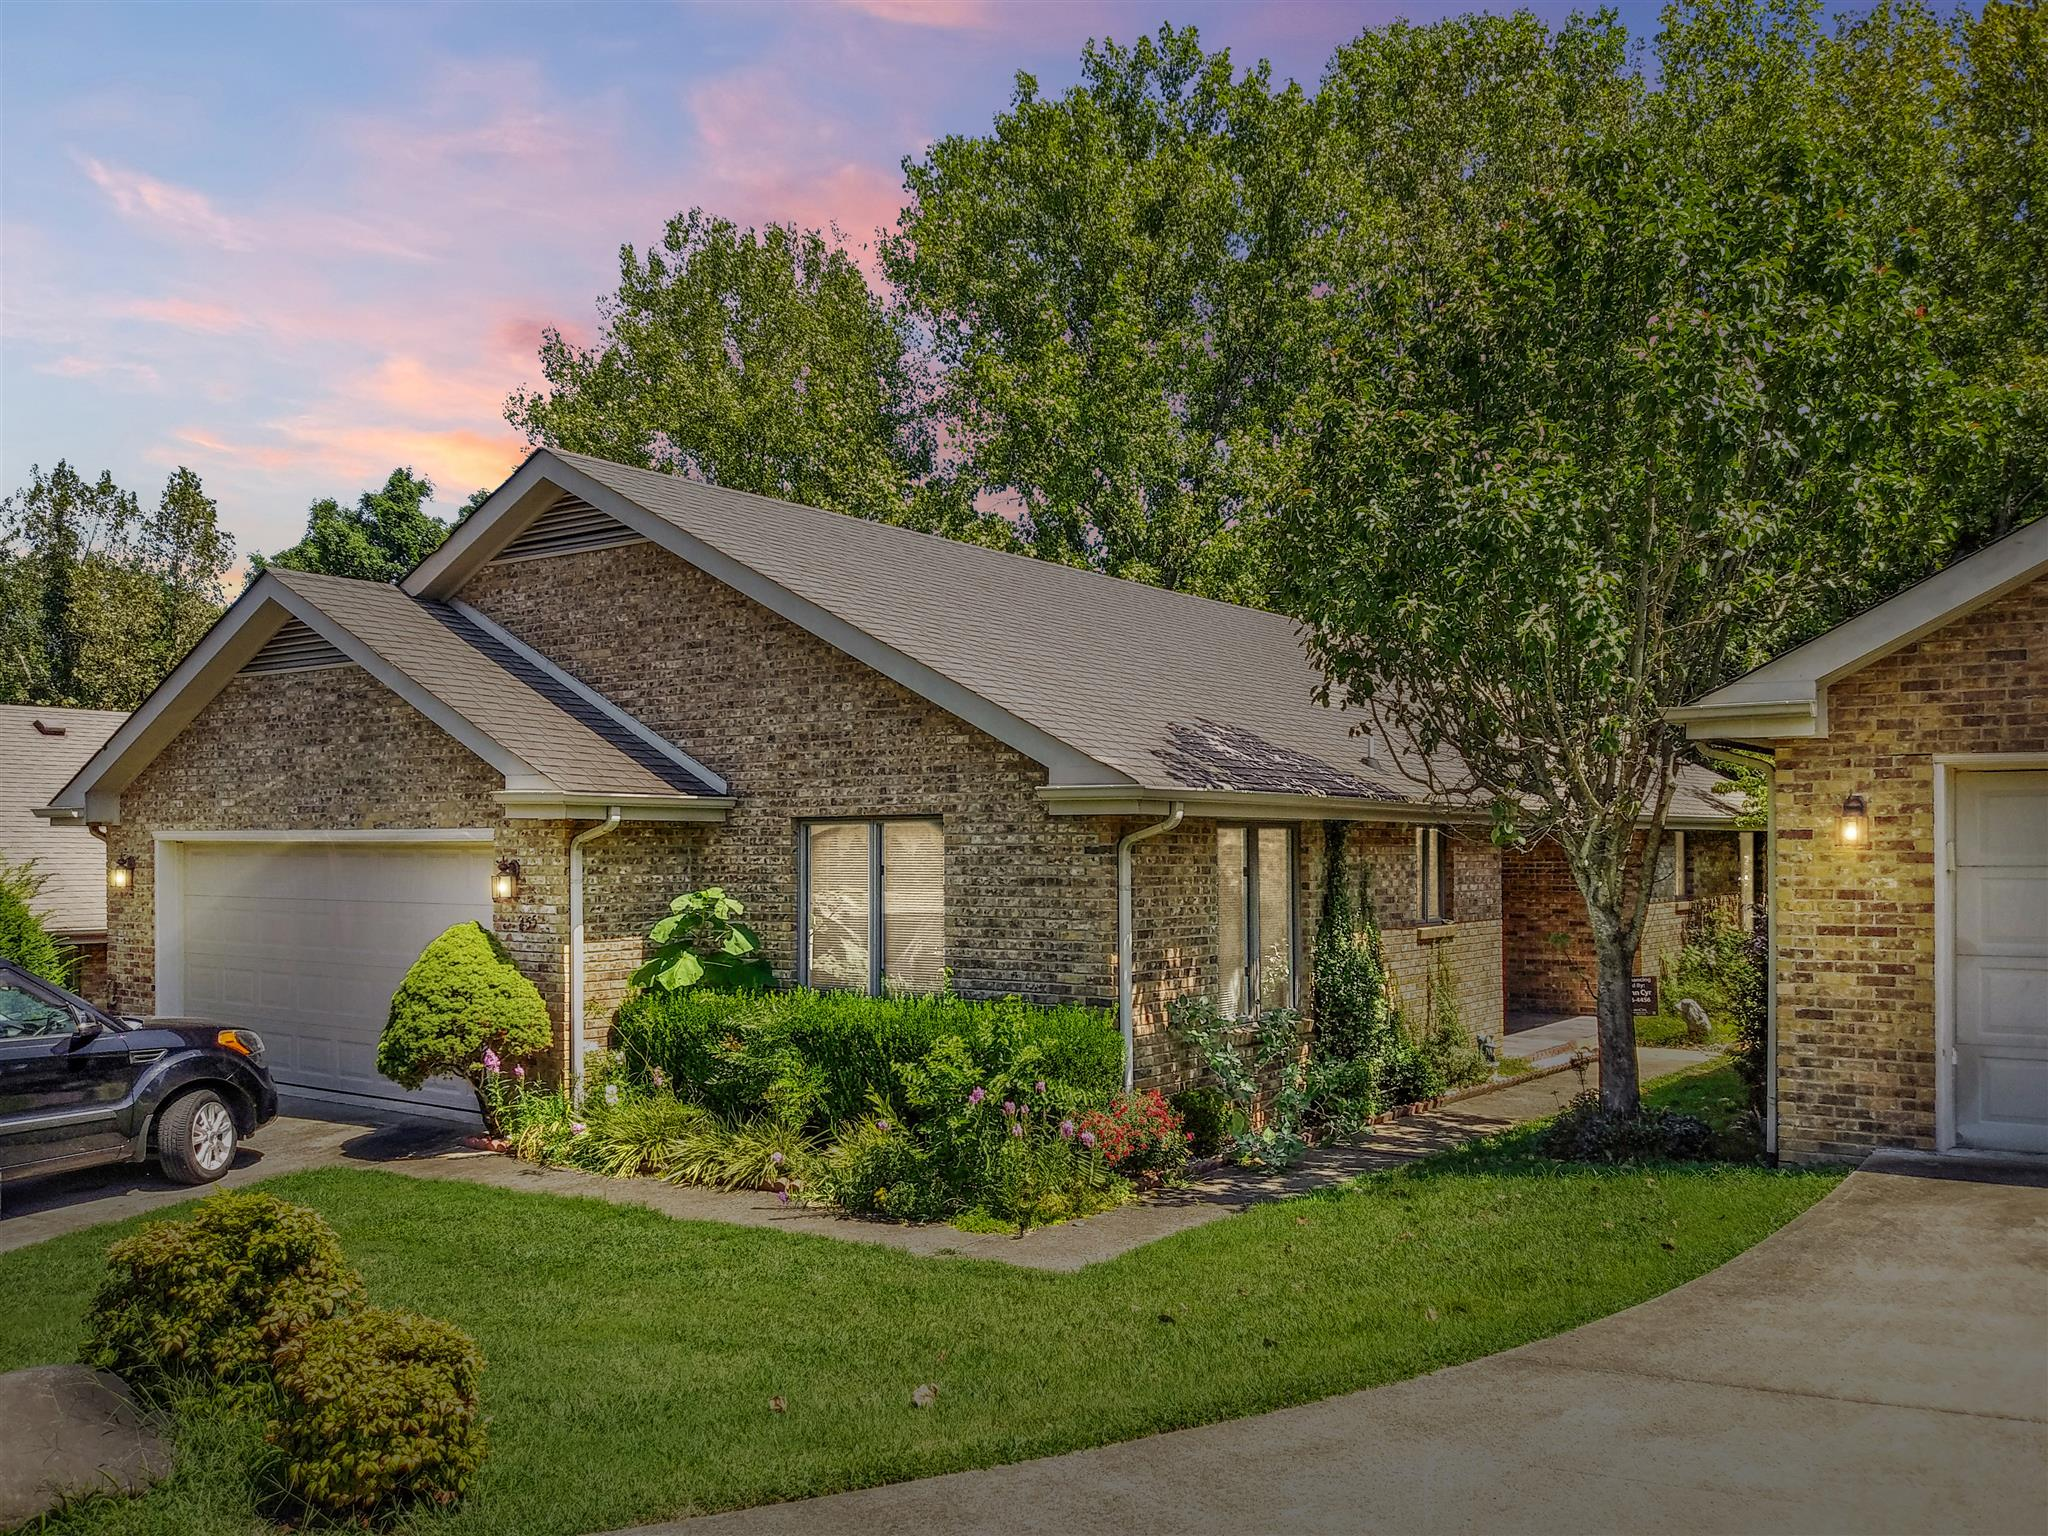 455 Country Club Ct, Clarksville, TN 37043 - Clarksville, TN real estate listing